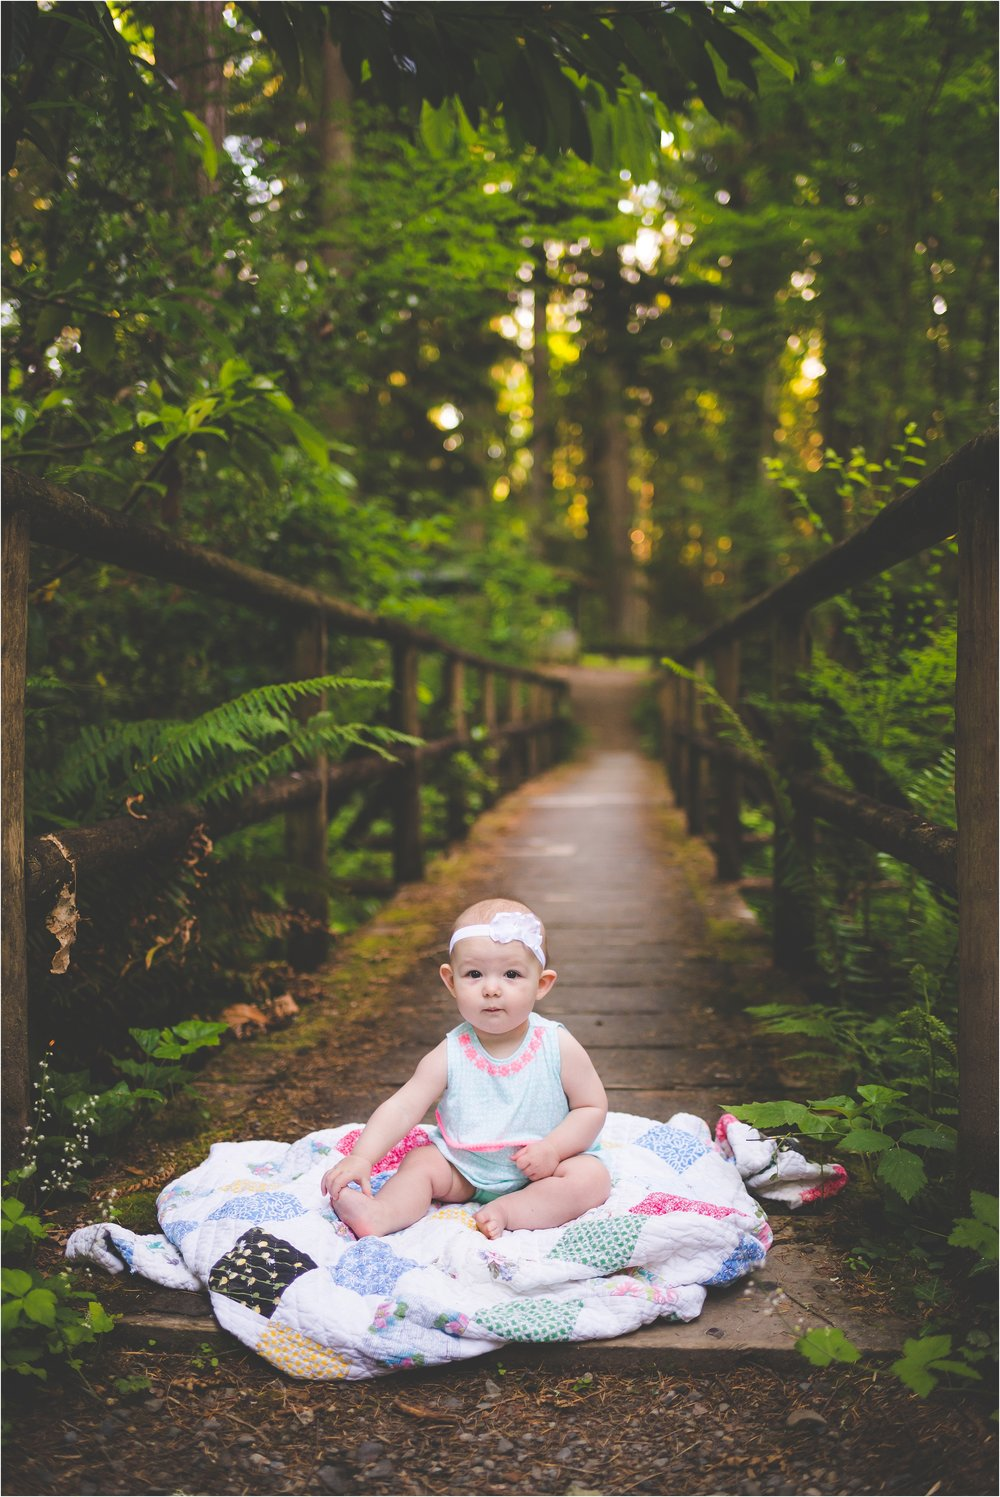 priest-point-park-olympia-wa-family-session-jannicka-mayte-anchorage-alaska-seattle-washington-family-photographer_0012.jpg